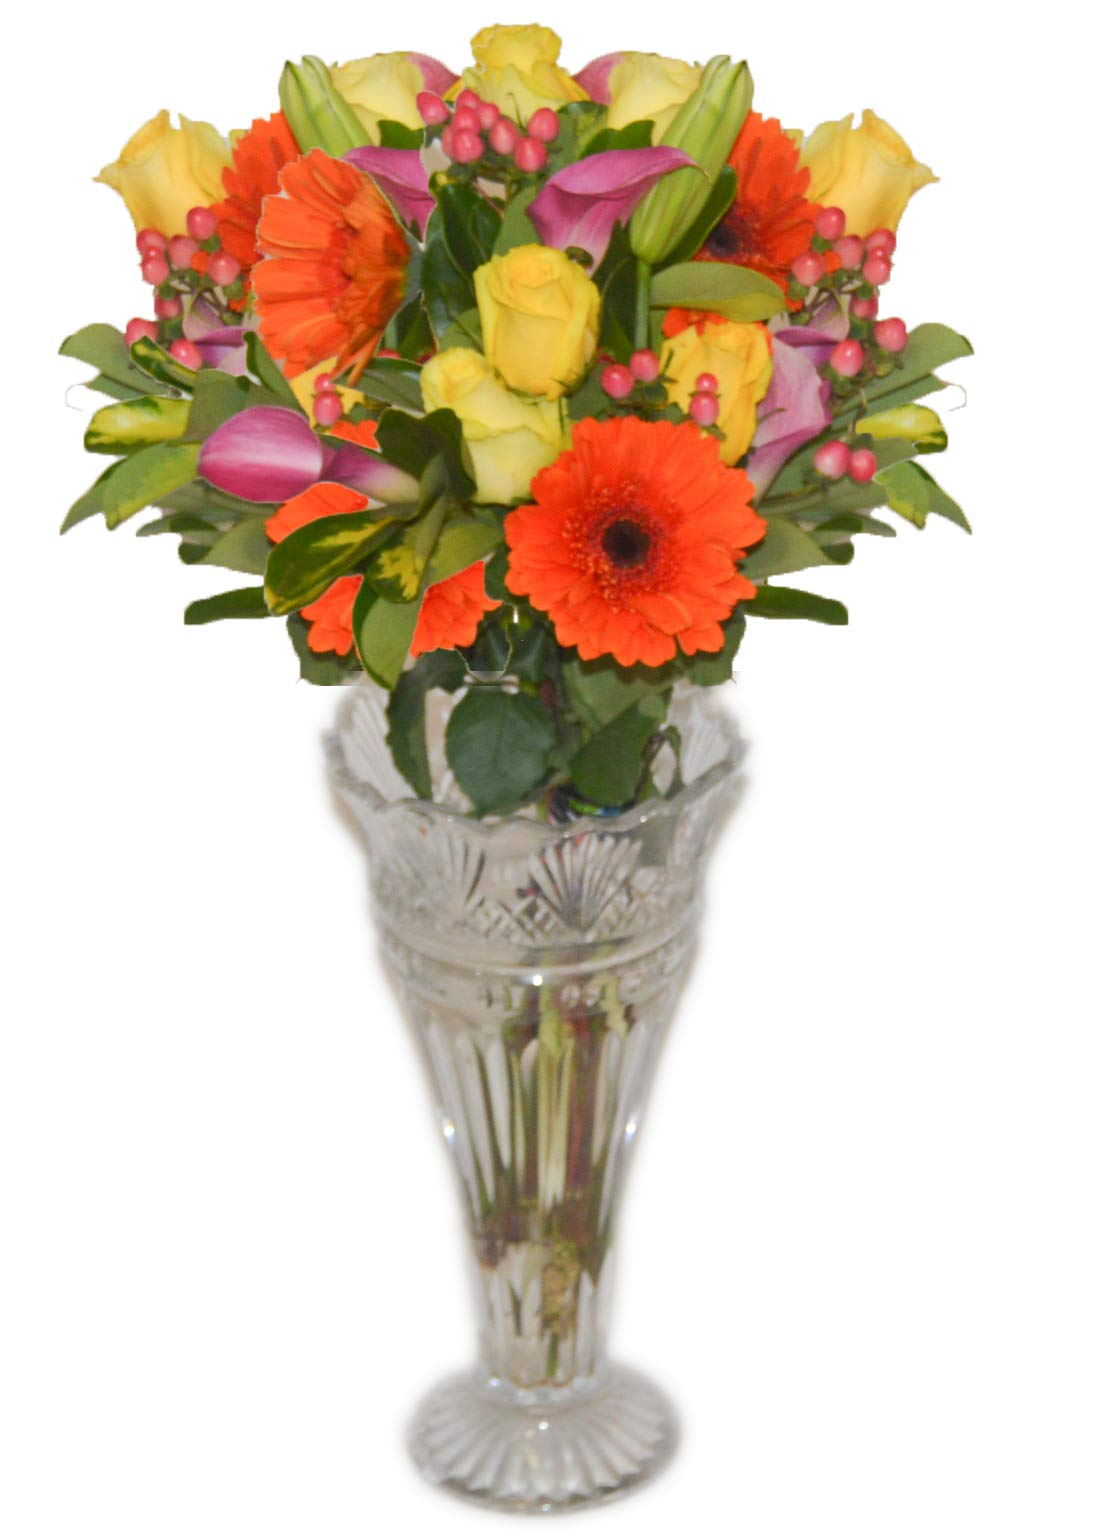 Fresh Flowers Bouquet - Roses, Gerbera, Calla Llily | Free Delivery by The Flowers Empire